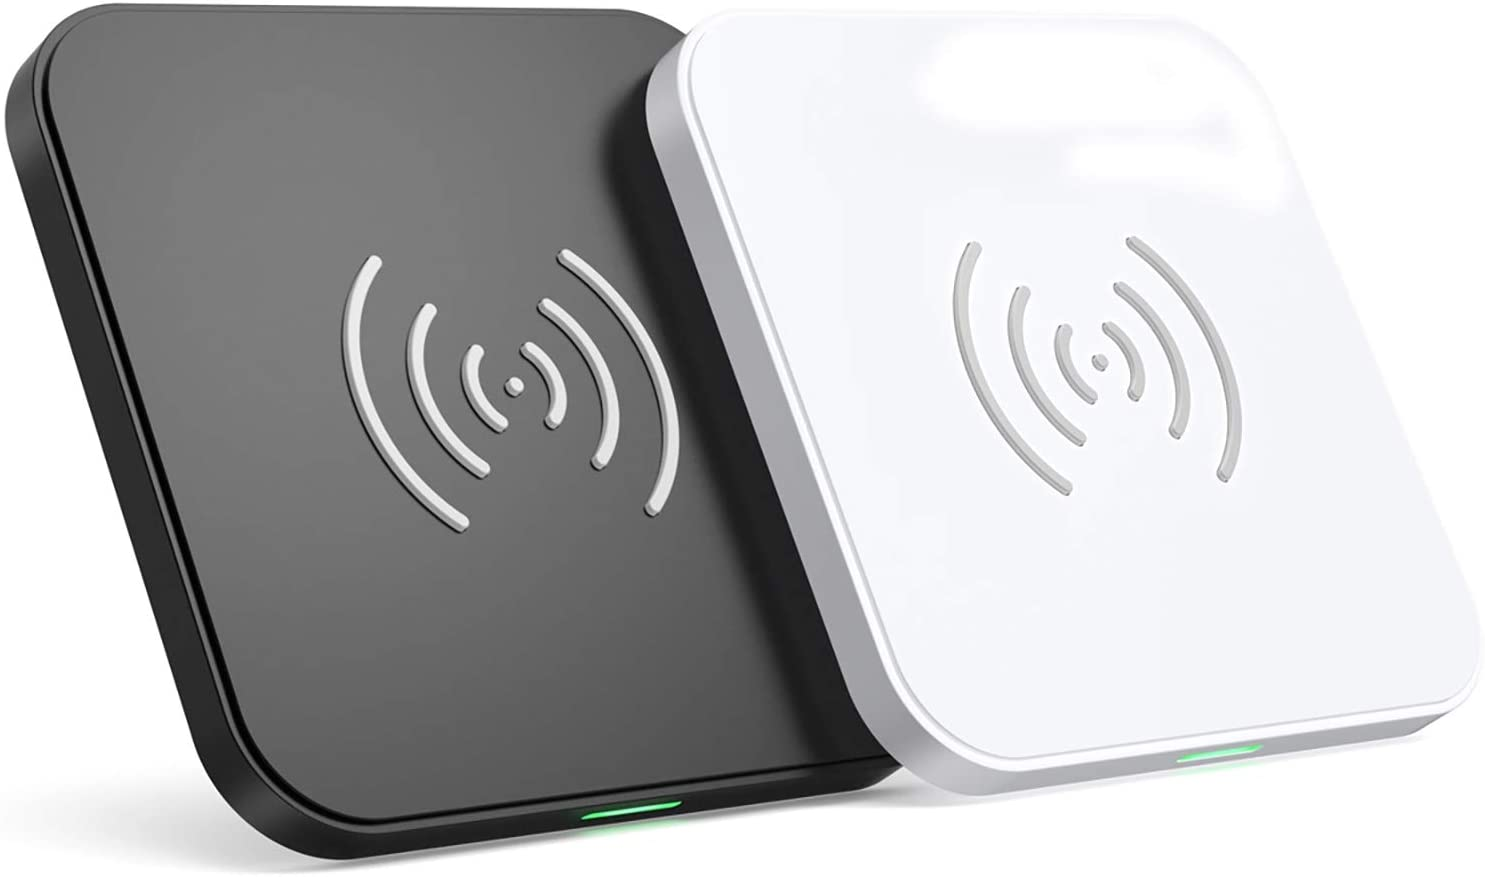 CHOETECH 10W Max Qi-Certified Wireless Charging Pad